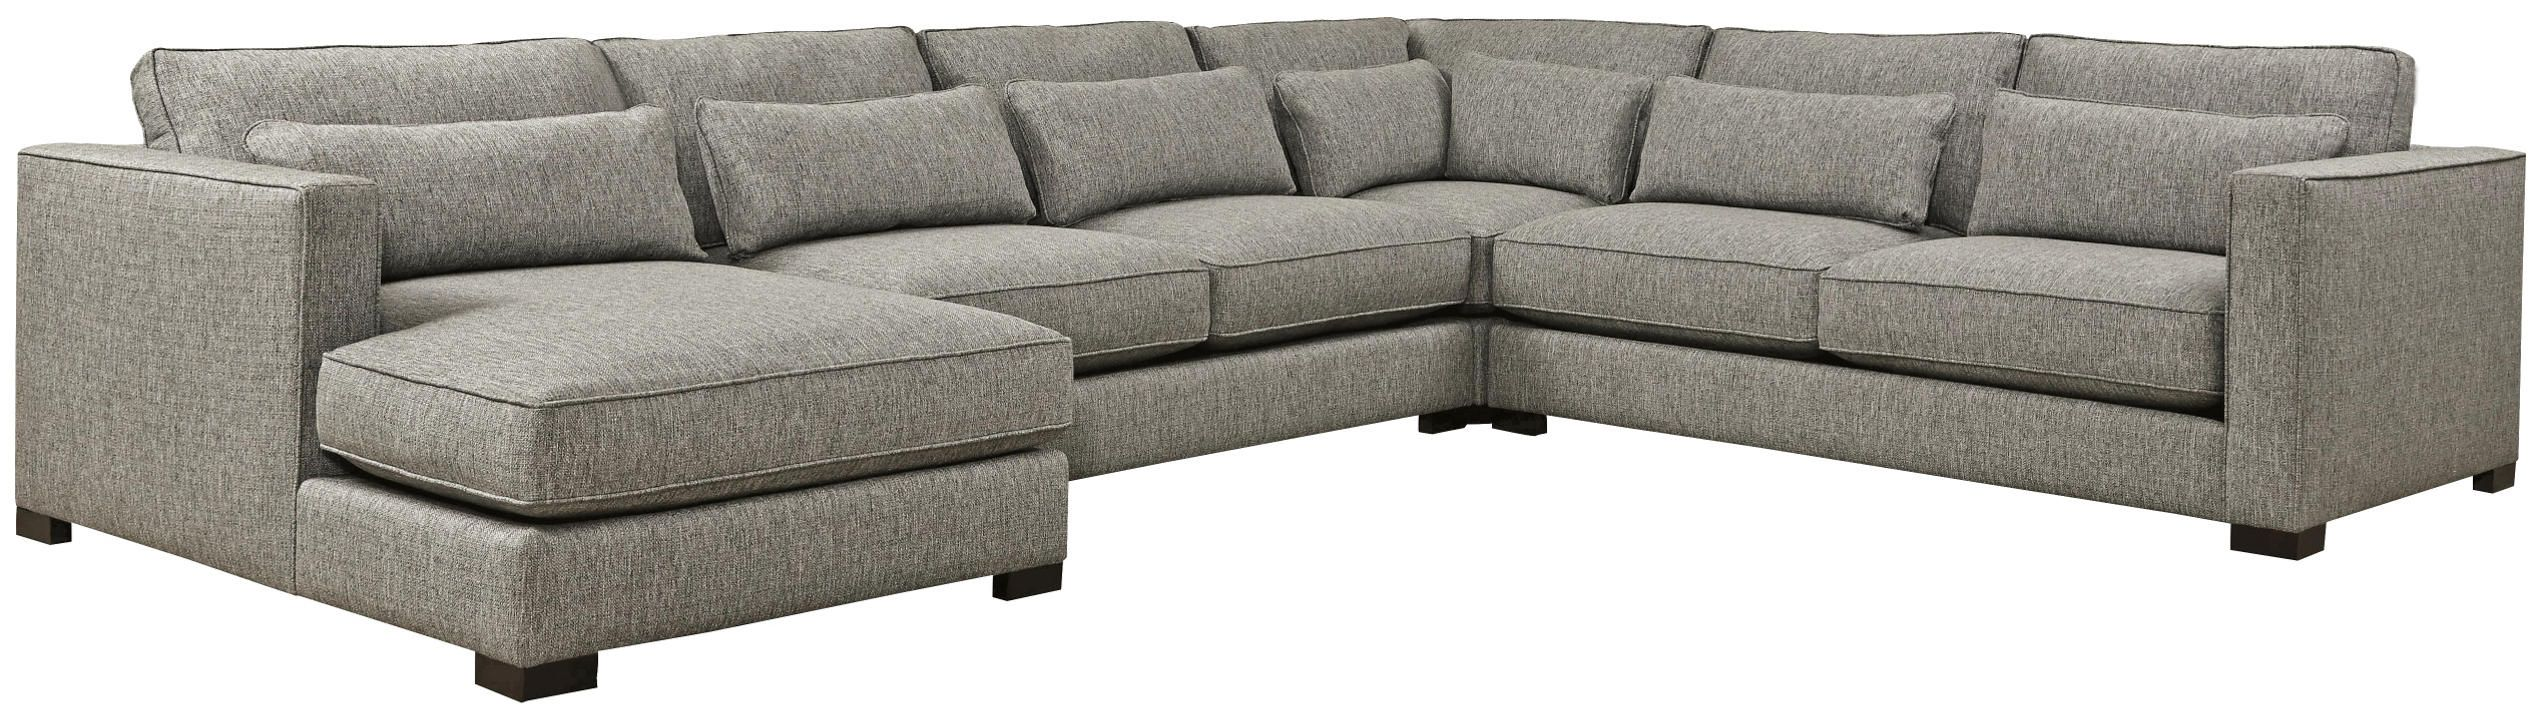 Detroit Sofa Co Ambassador sectional is very inviting with a soft fabric and matching kidney · Art VanSoft ...  sc 1 st  Pinterest : art van sectional - Sectionals, Sofas & Couches